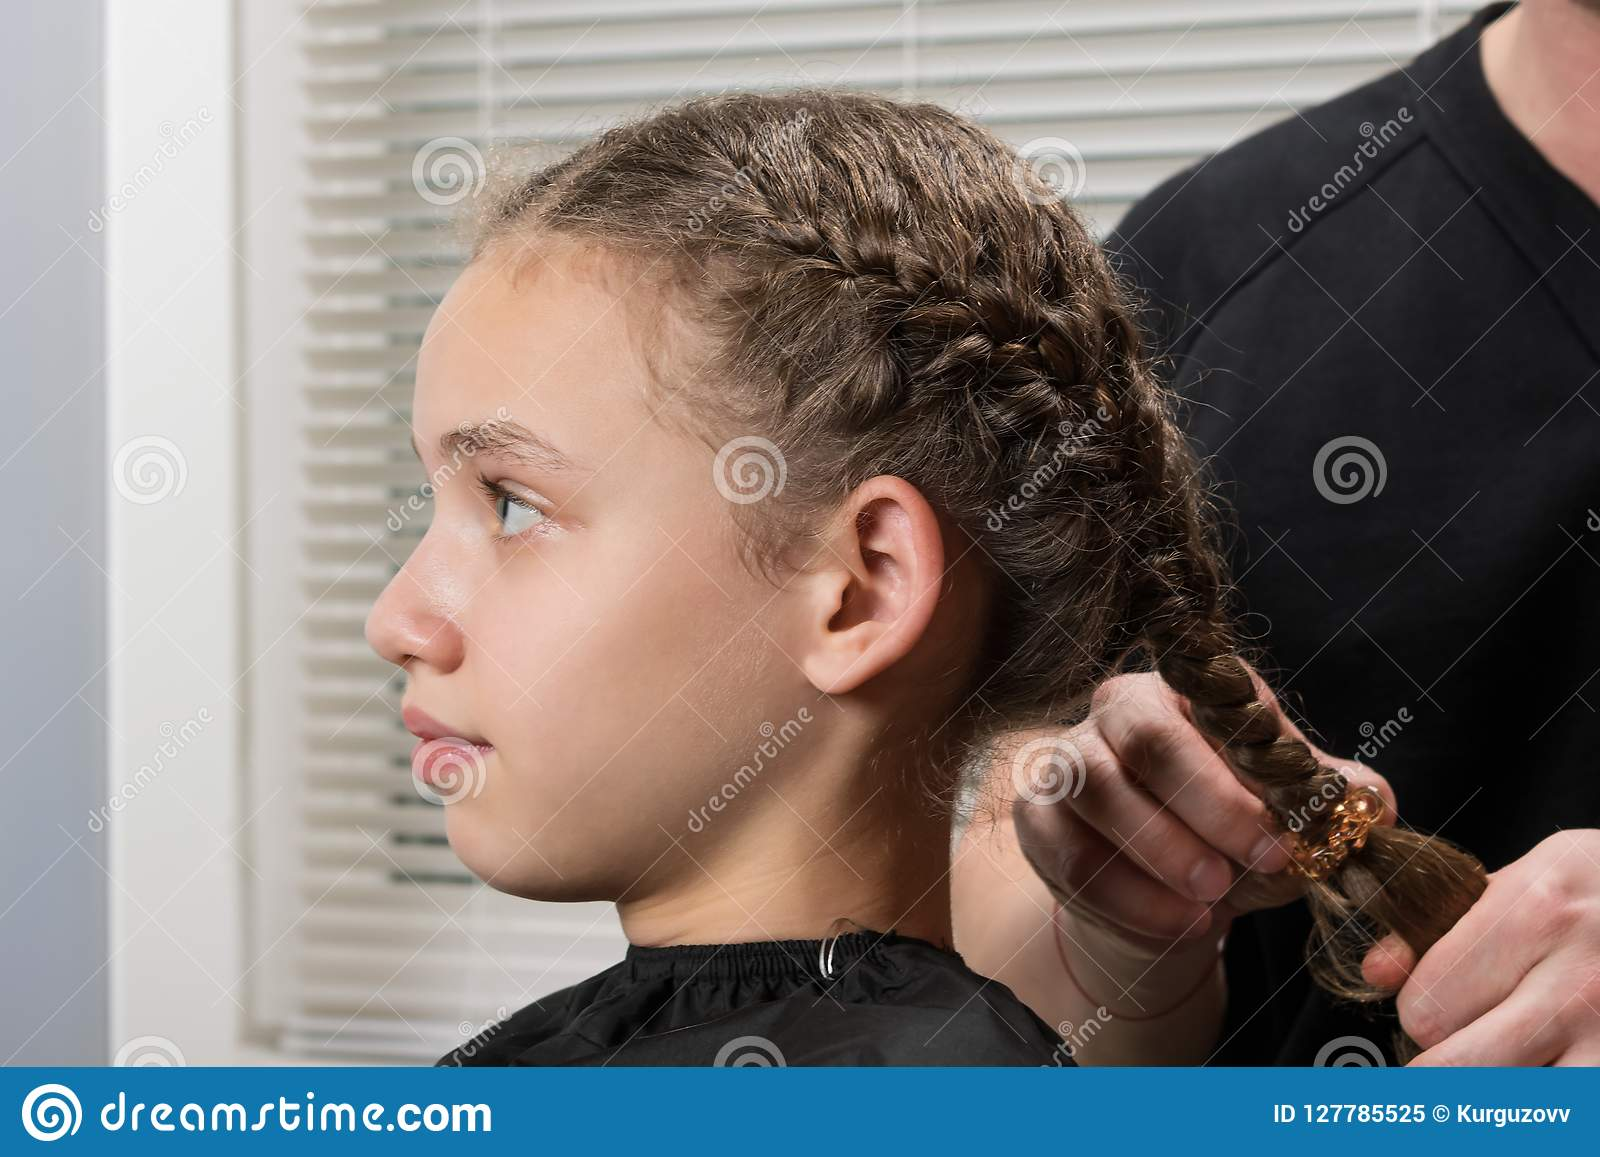 The stylist makes the girl a hair braid, close-up